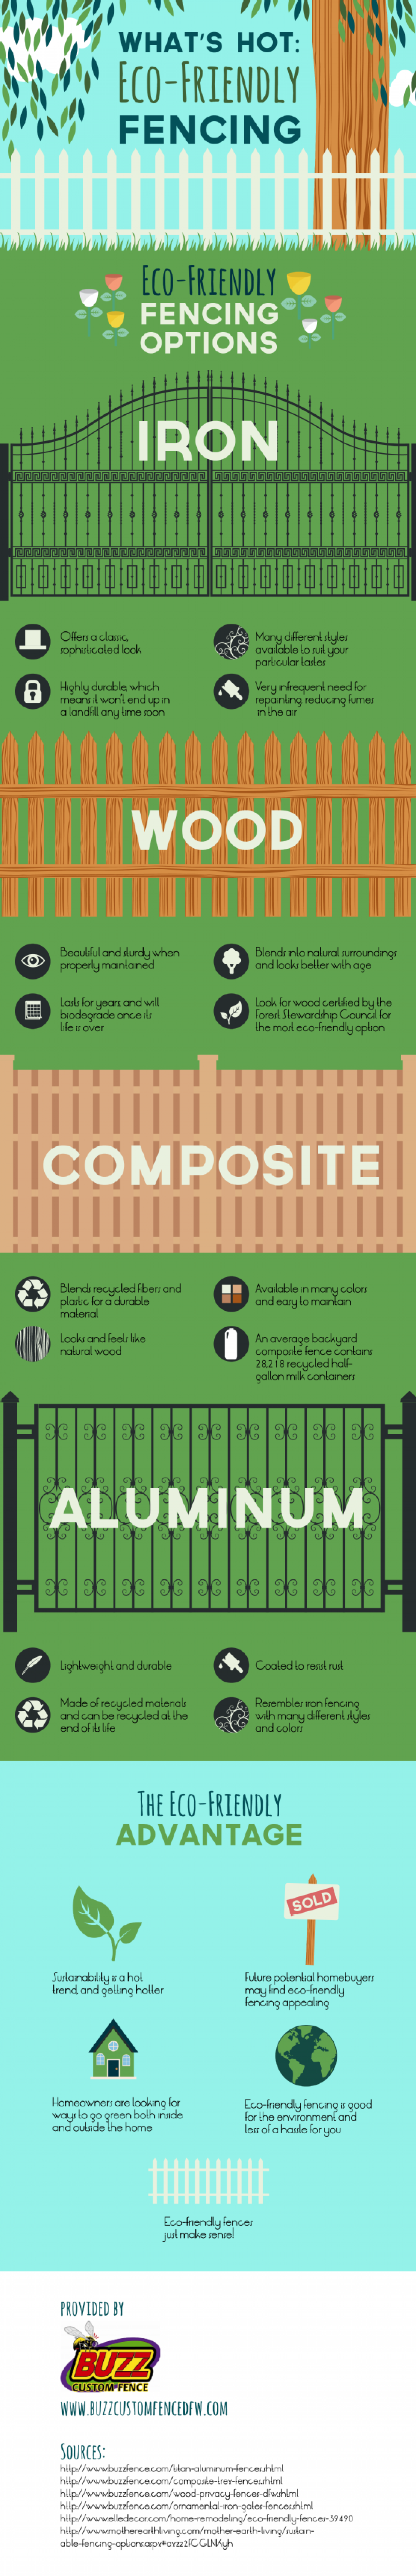 What's Hot: Eco-Friendly Fencing Infographic